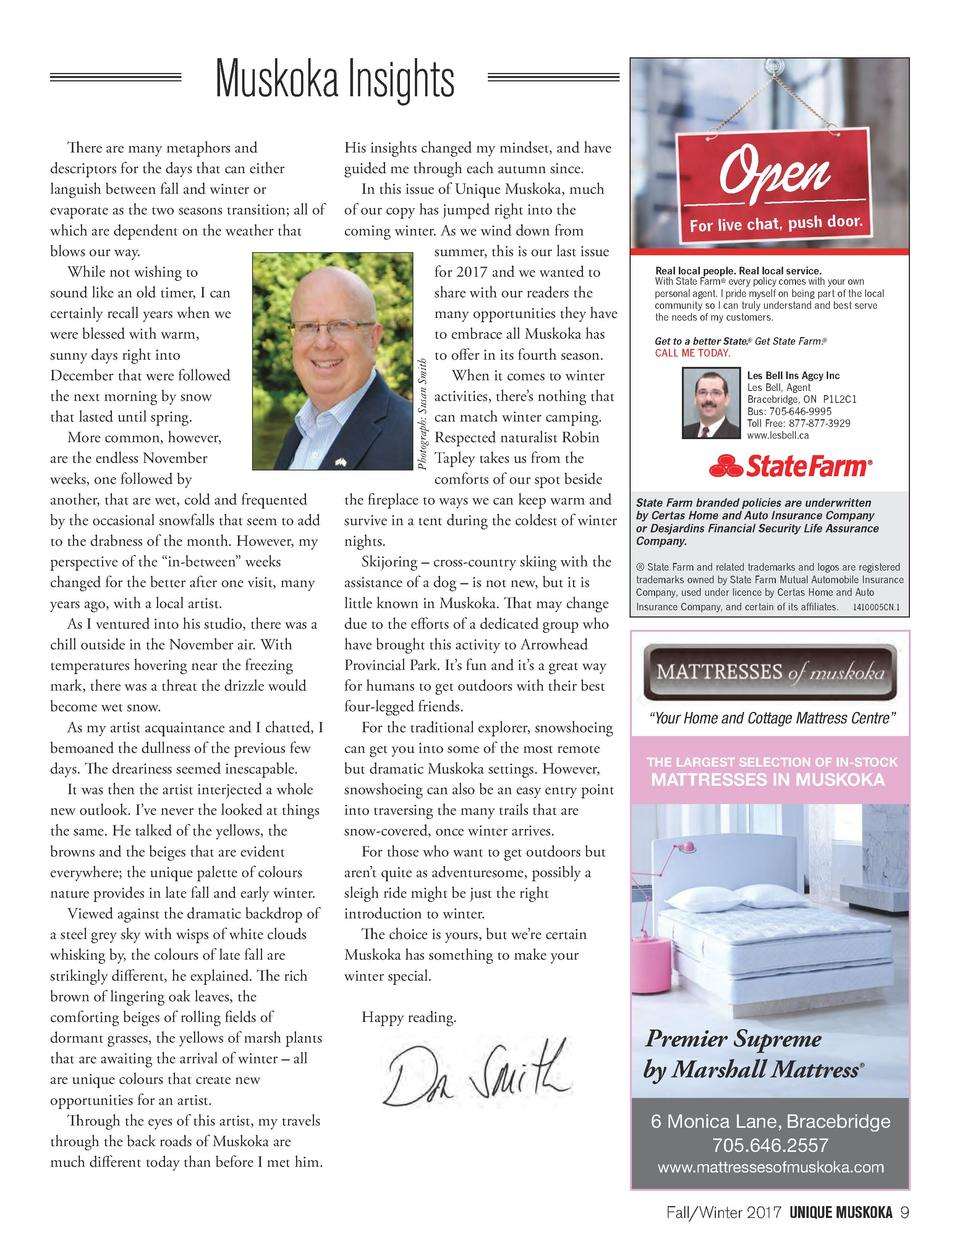 Muskoka Insights His insights changed my mindset, and have guided me through each autumn since. In this issue of Unique Mu...